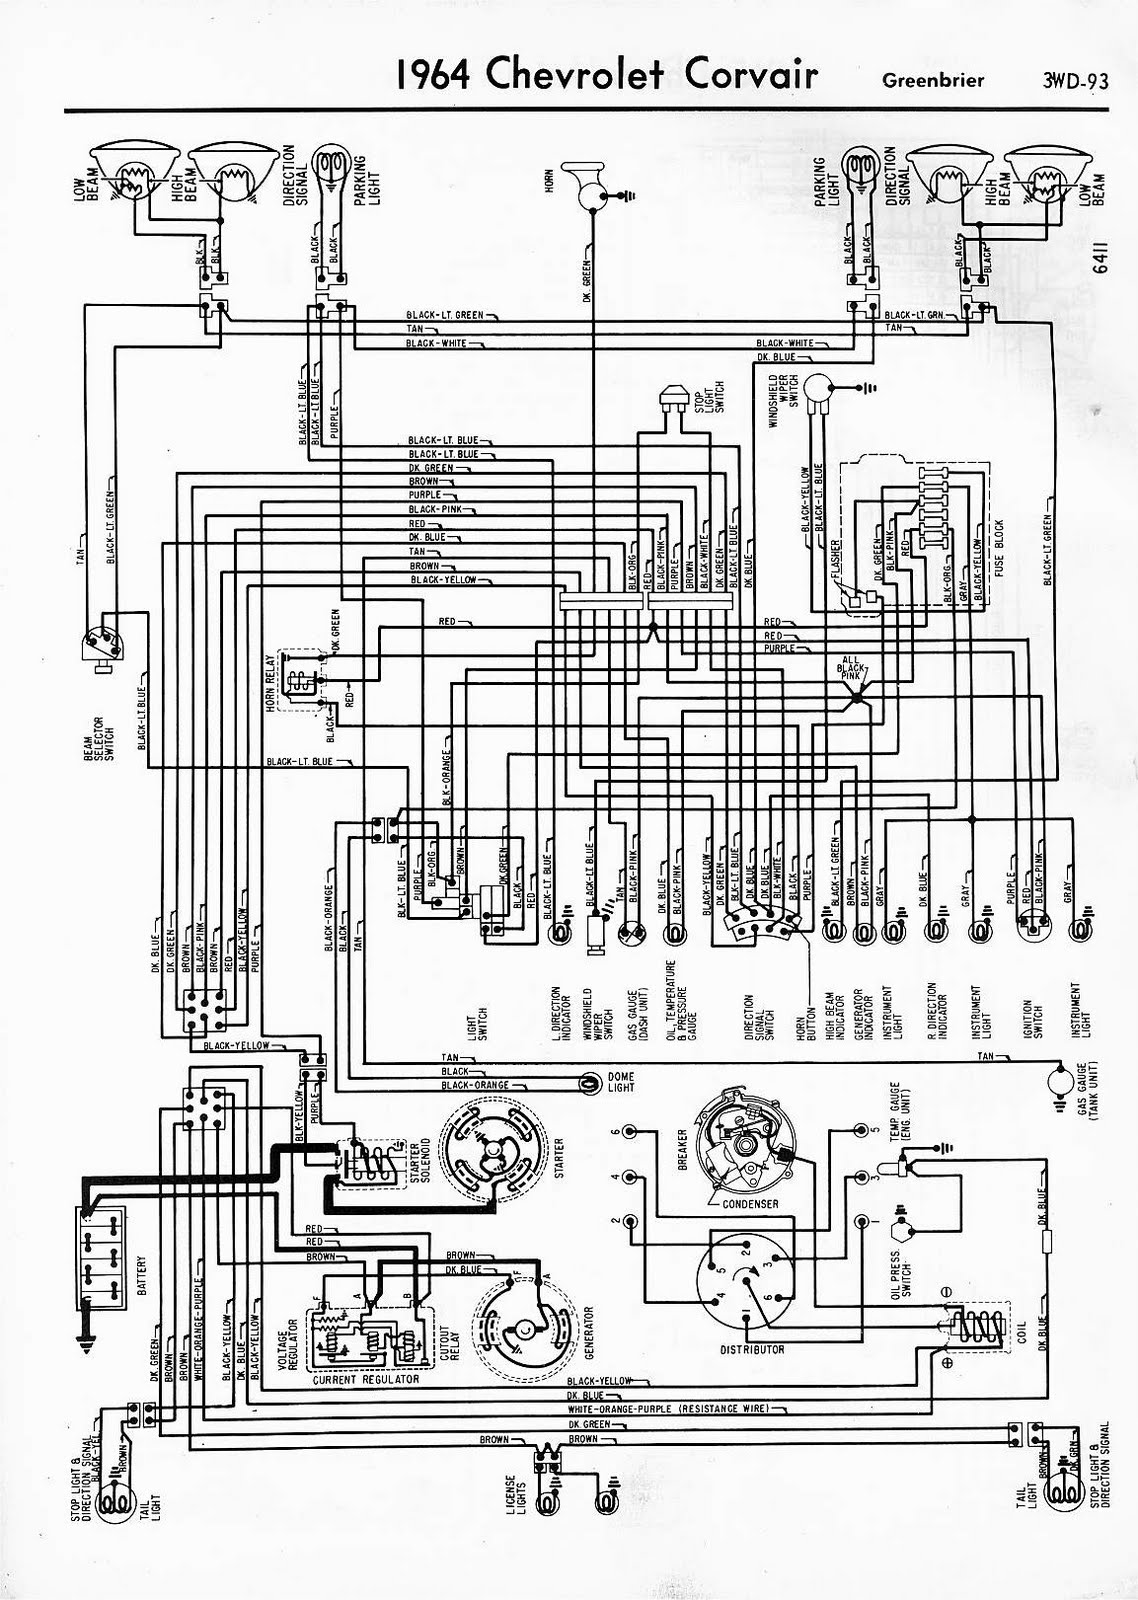 hight resolution of 63 corvair wiring diagram wiring diagrams long63 corvair wiring diagram wiring diagram blog 63 corvair wiring